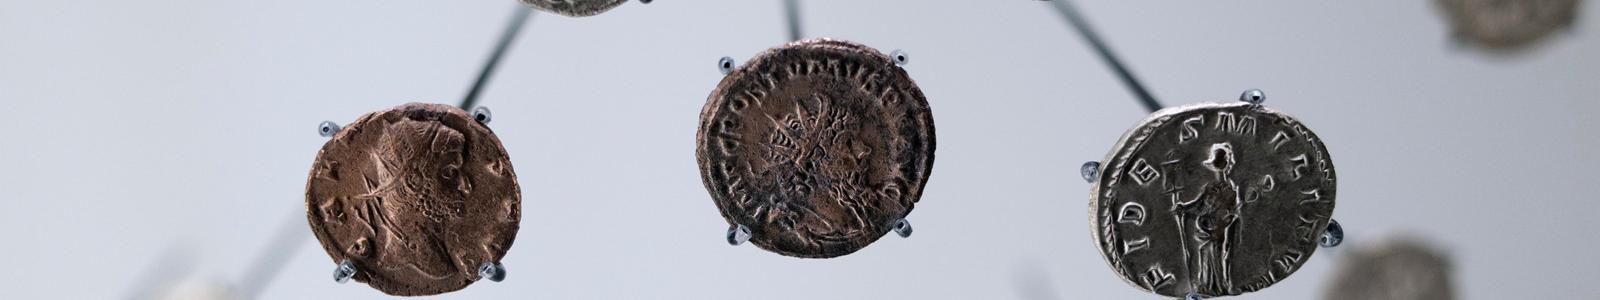 Coin, penny, part of a hoard found at White Lane, Greywell, Mapledurwell and Up Nately, Hampshire in 1989, issued by Henry III, minted by the moneyer Thomas at York, North Yorkshire, 1248-1250